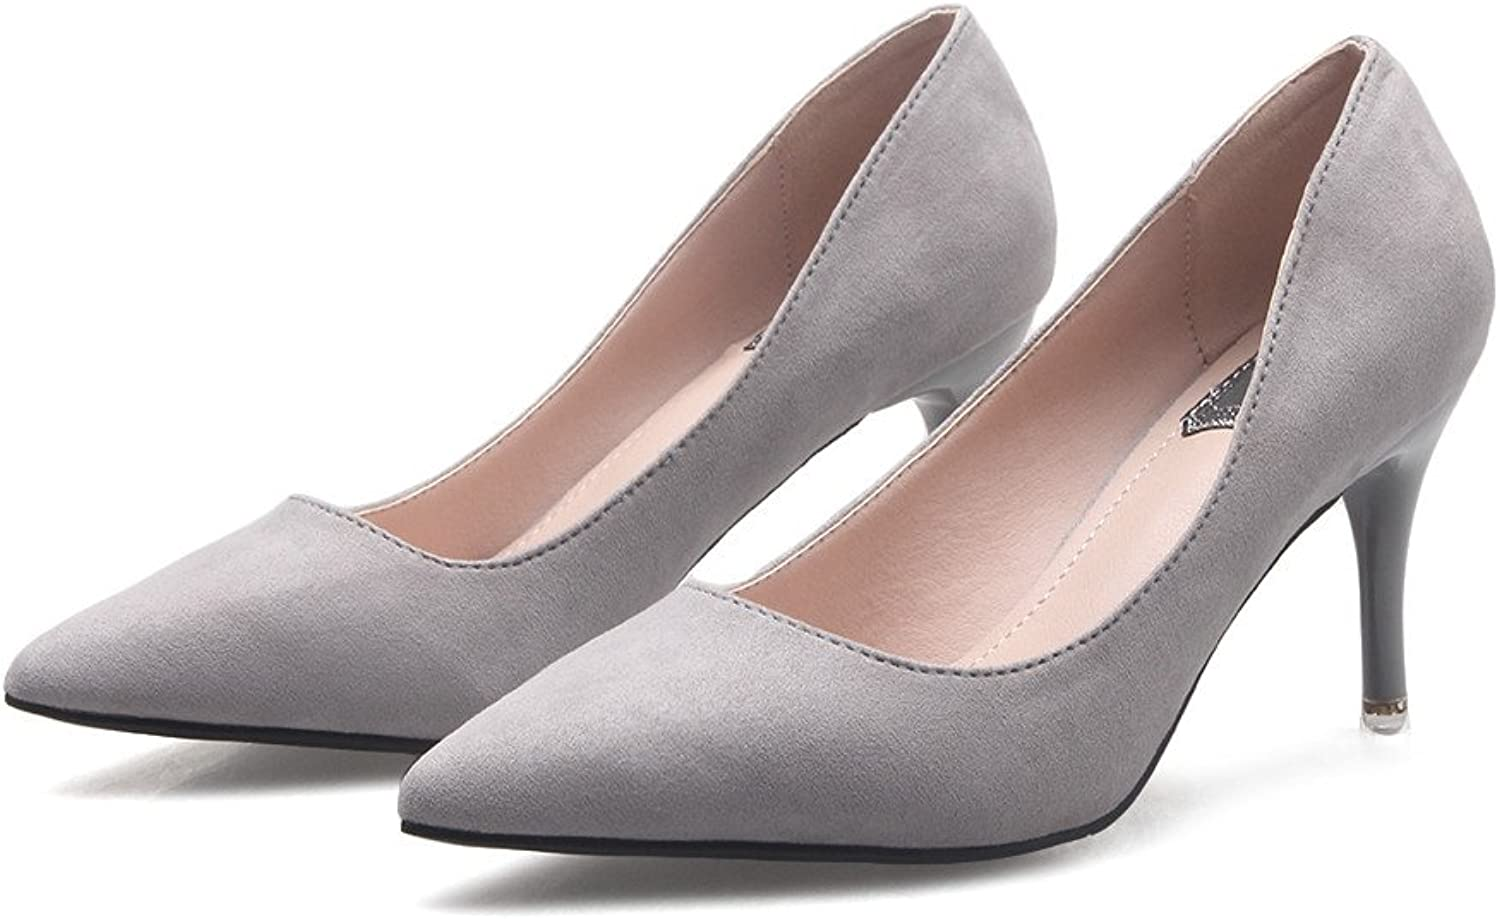 RUGAI-UE Pumps Low Heeled Spring Fashion Suede Ladies High Heels Heels Pointed Shallow shoes